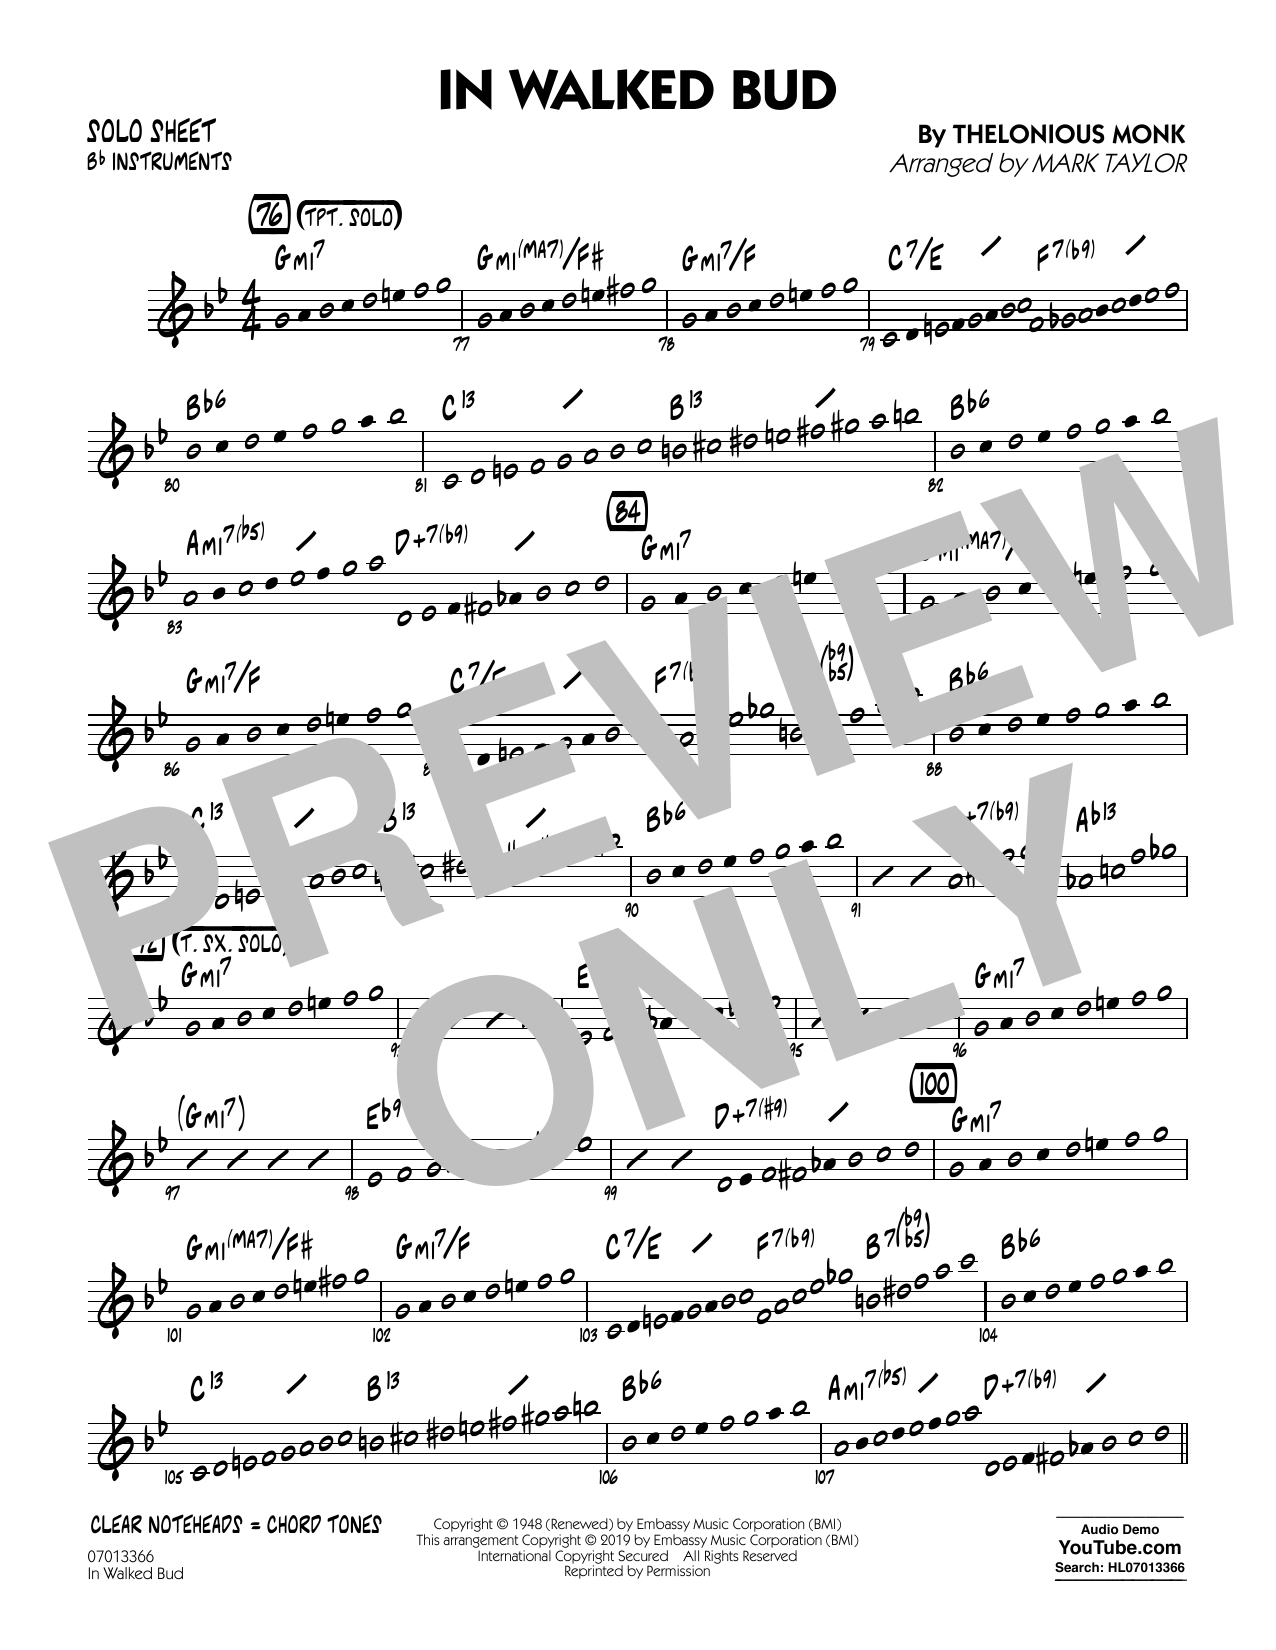 Thelonious Monk In Walked Bud (arr. Mark Taylor) - Bb Solo Sheet sheet music notes and chords. Download Printable PDF.